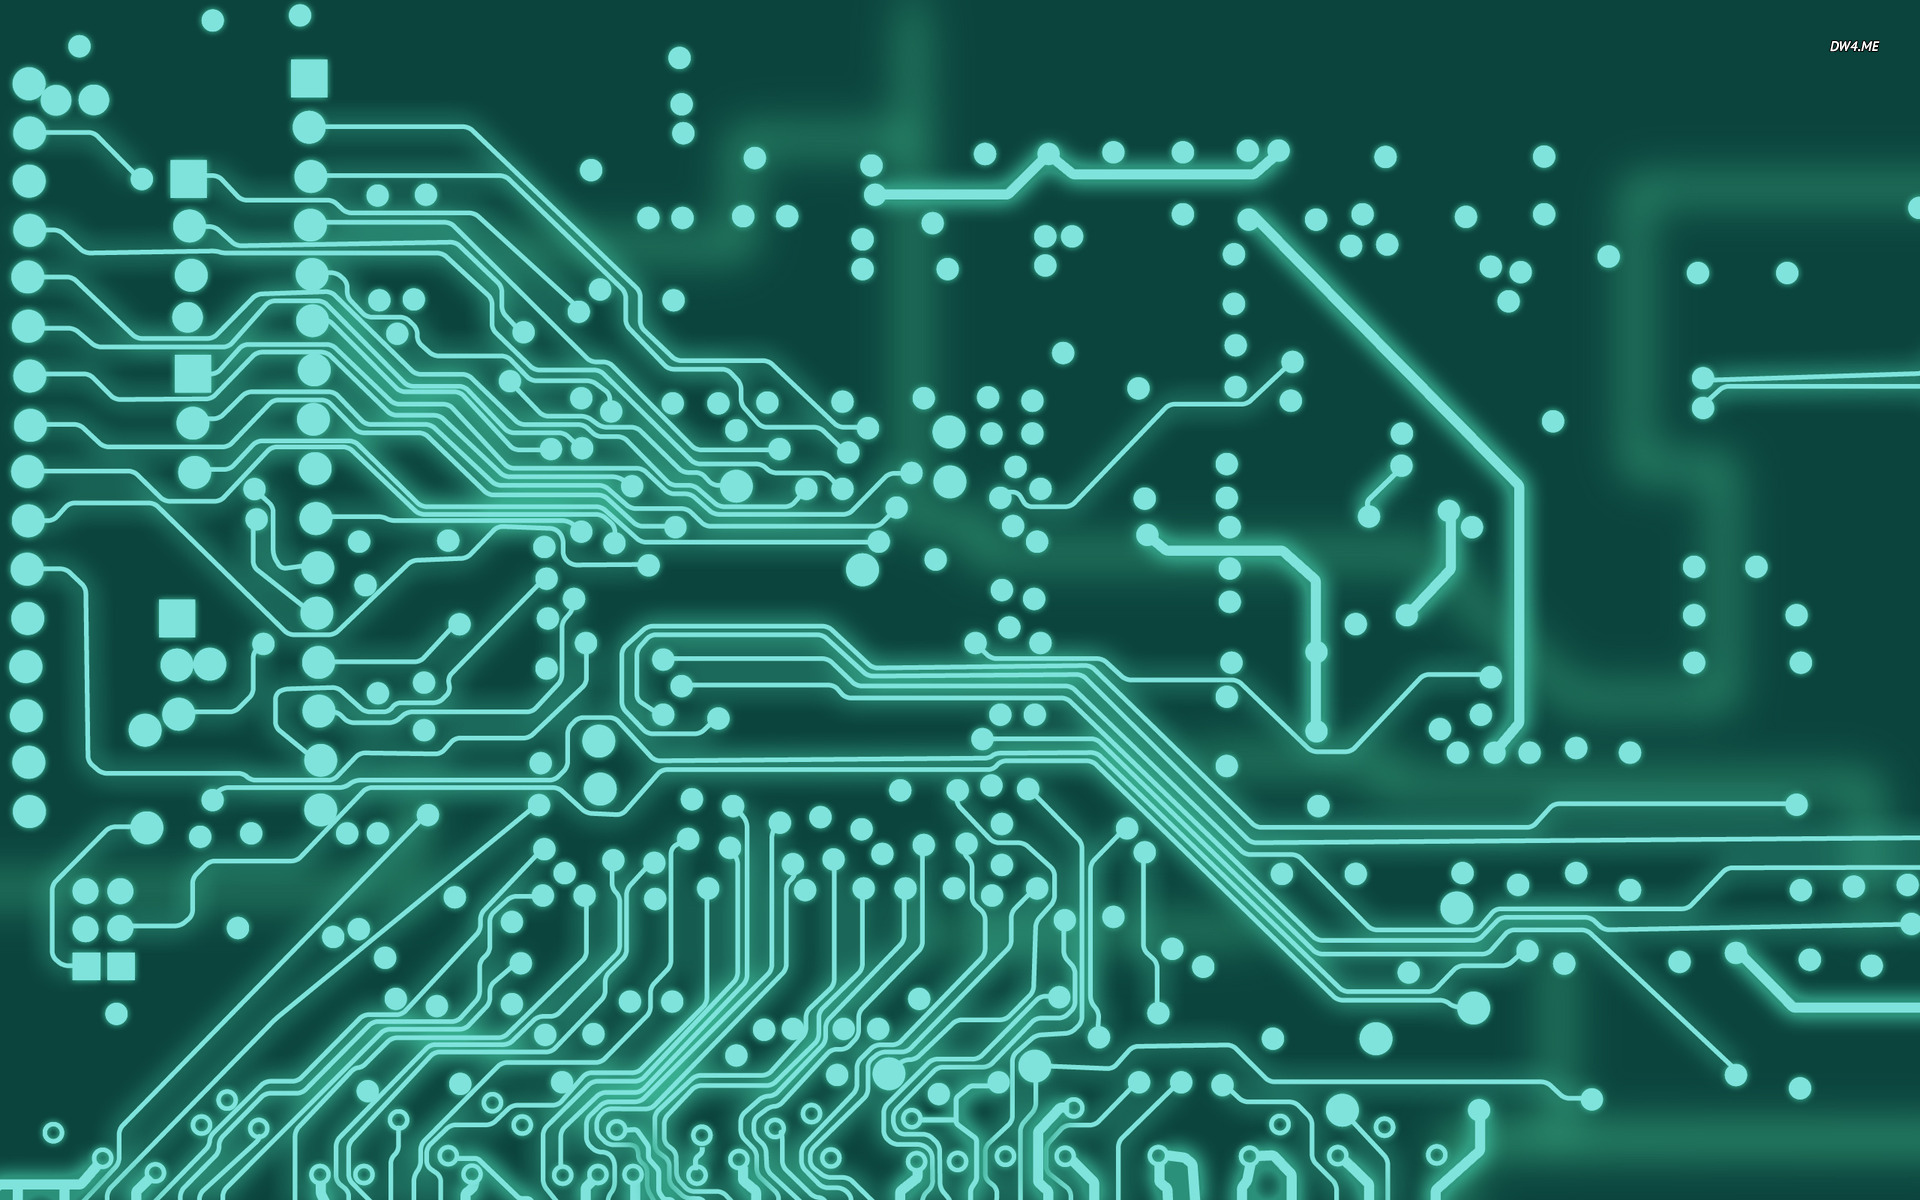 Cool Electronic Wallpapers Wallpapersafari Circuit Board Graphic Design Grunge Stock Photos Wallpaper Abstract 775 1920x1200